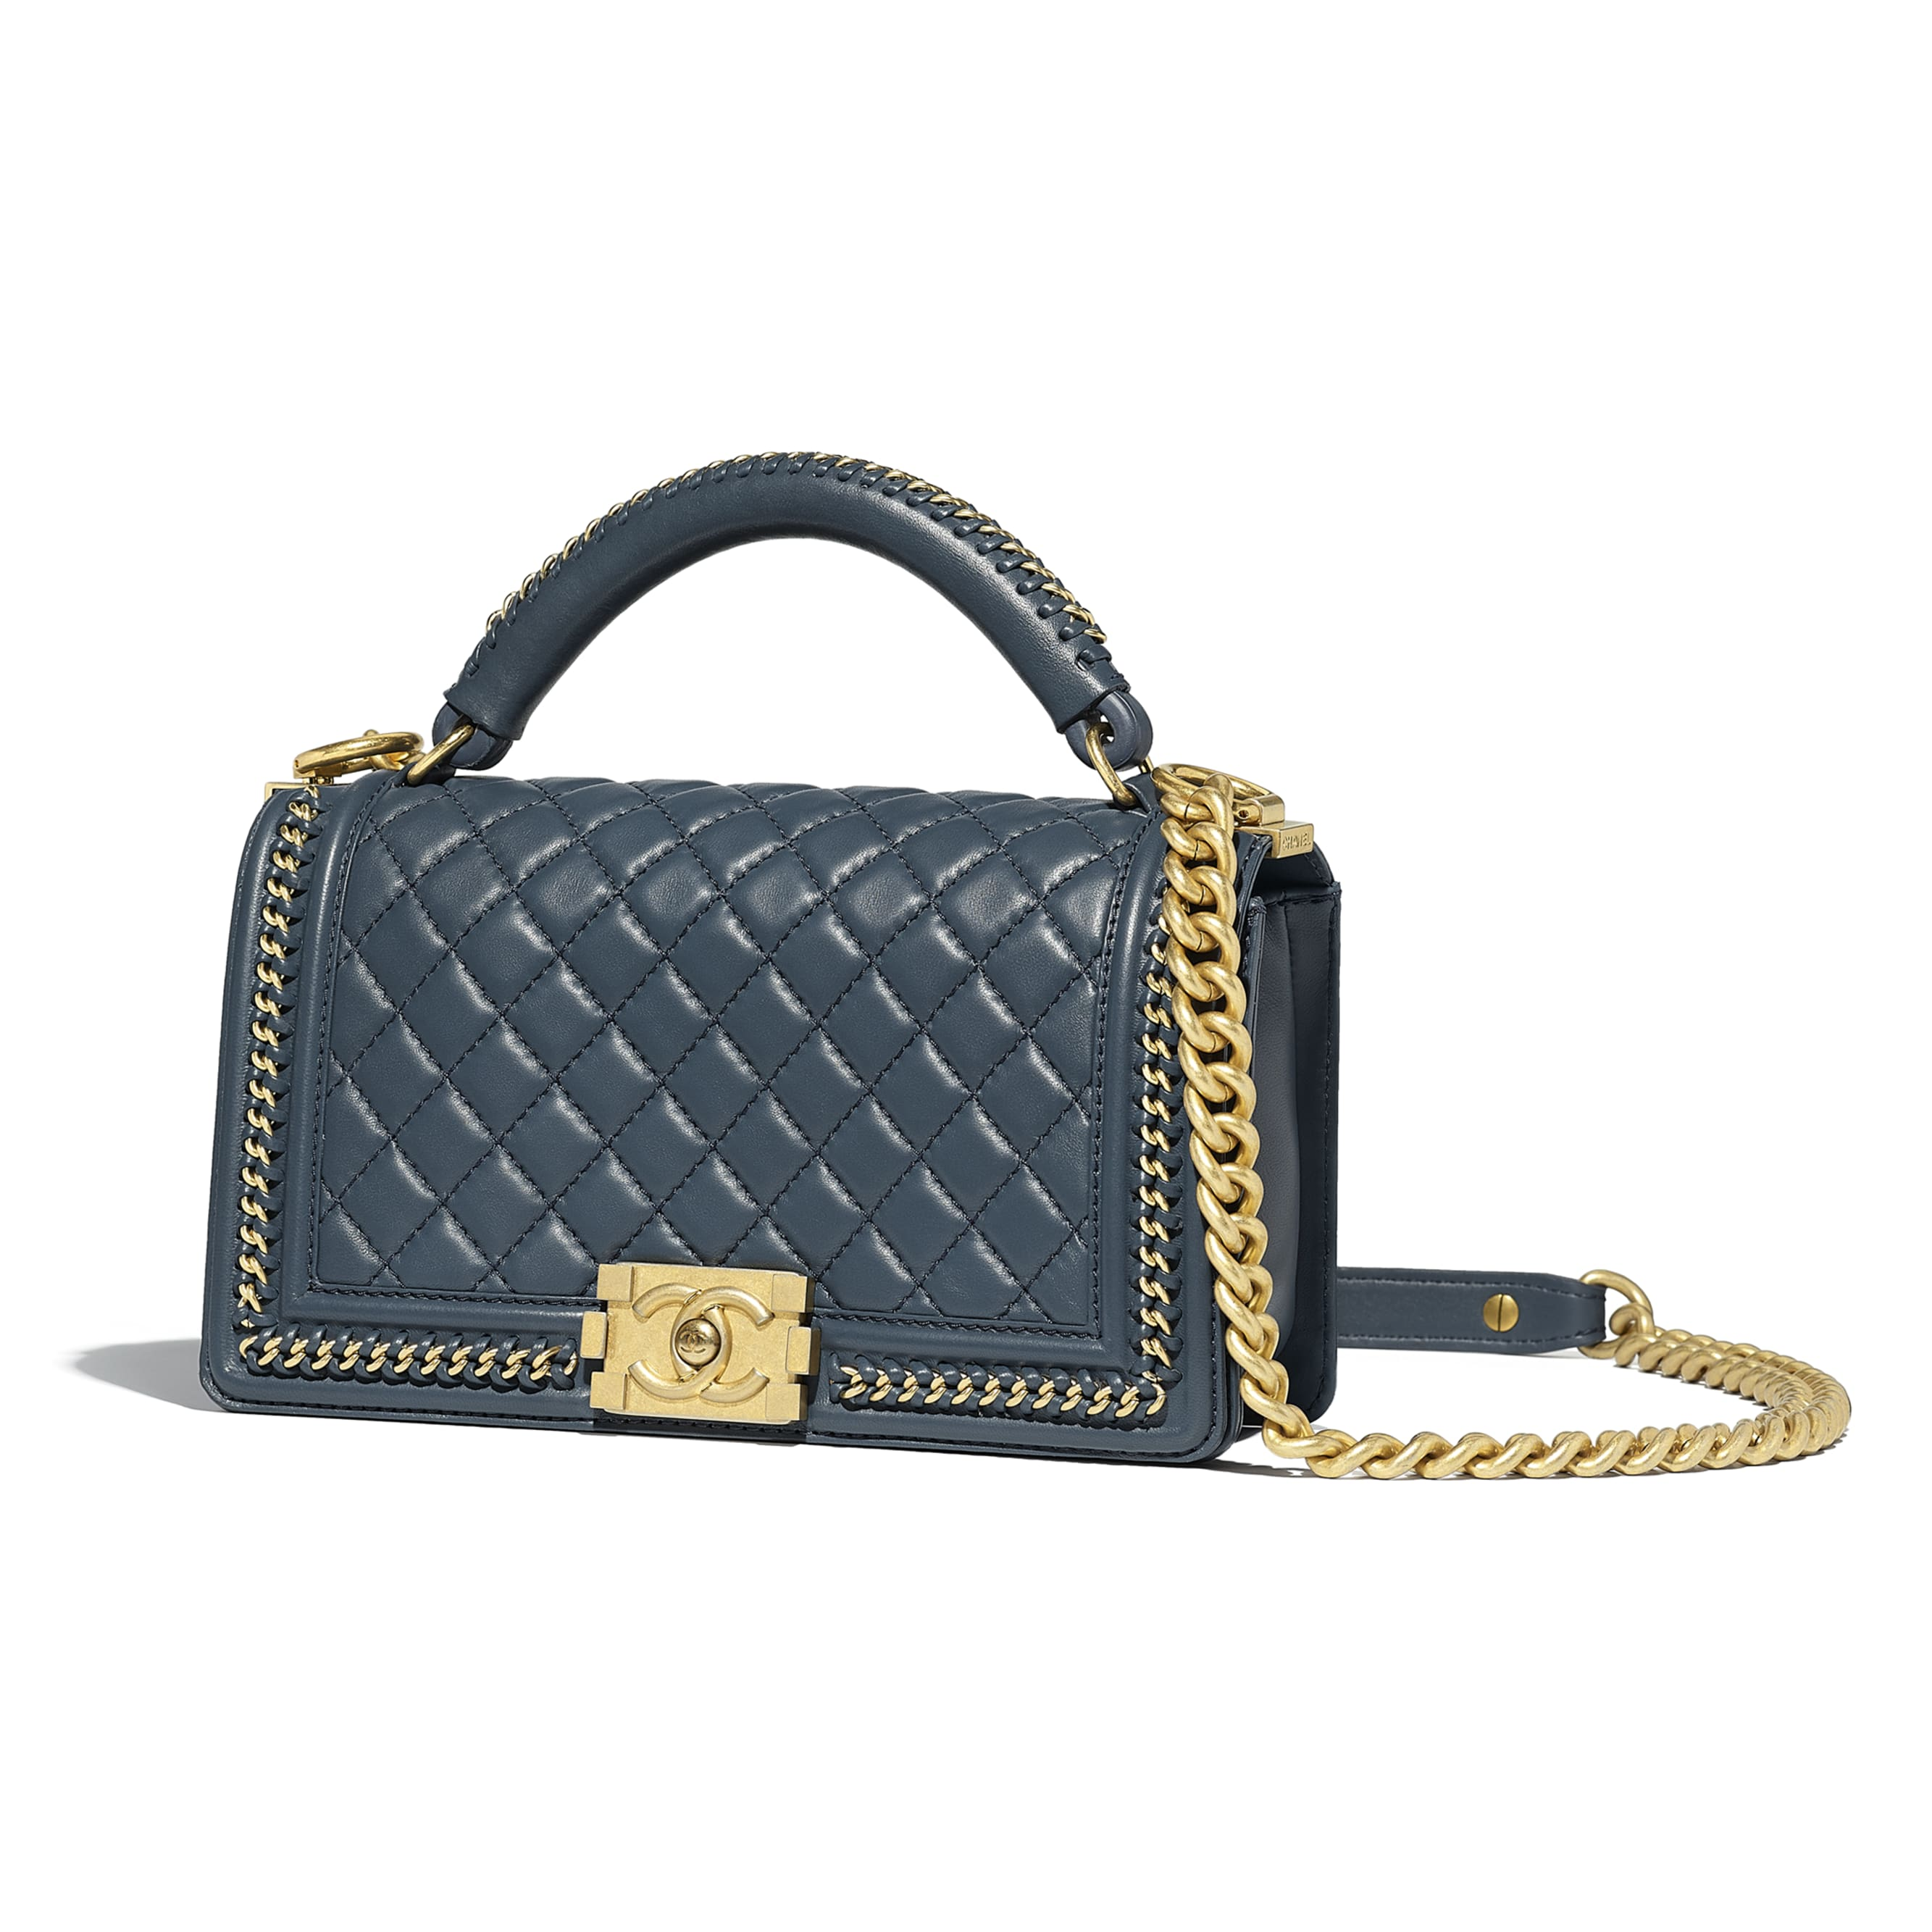 BOY CHANEL Flap Bag with Handle - Blue - Calfskin & Gold-Tone Metal - Default view - see standard sized version